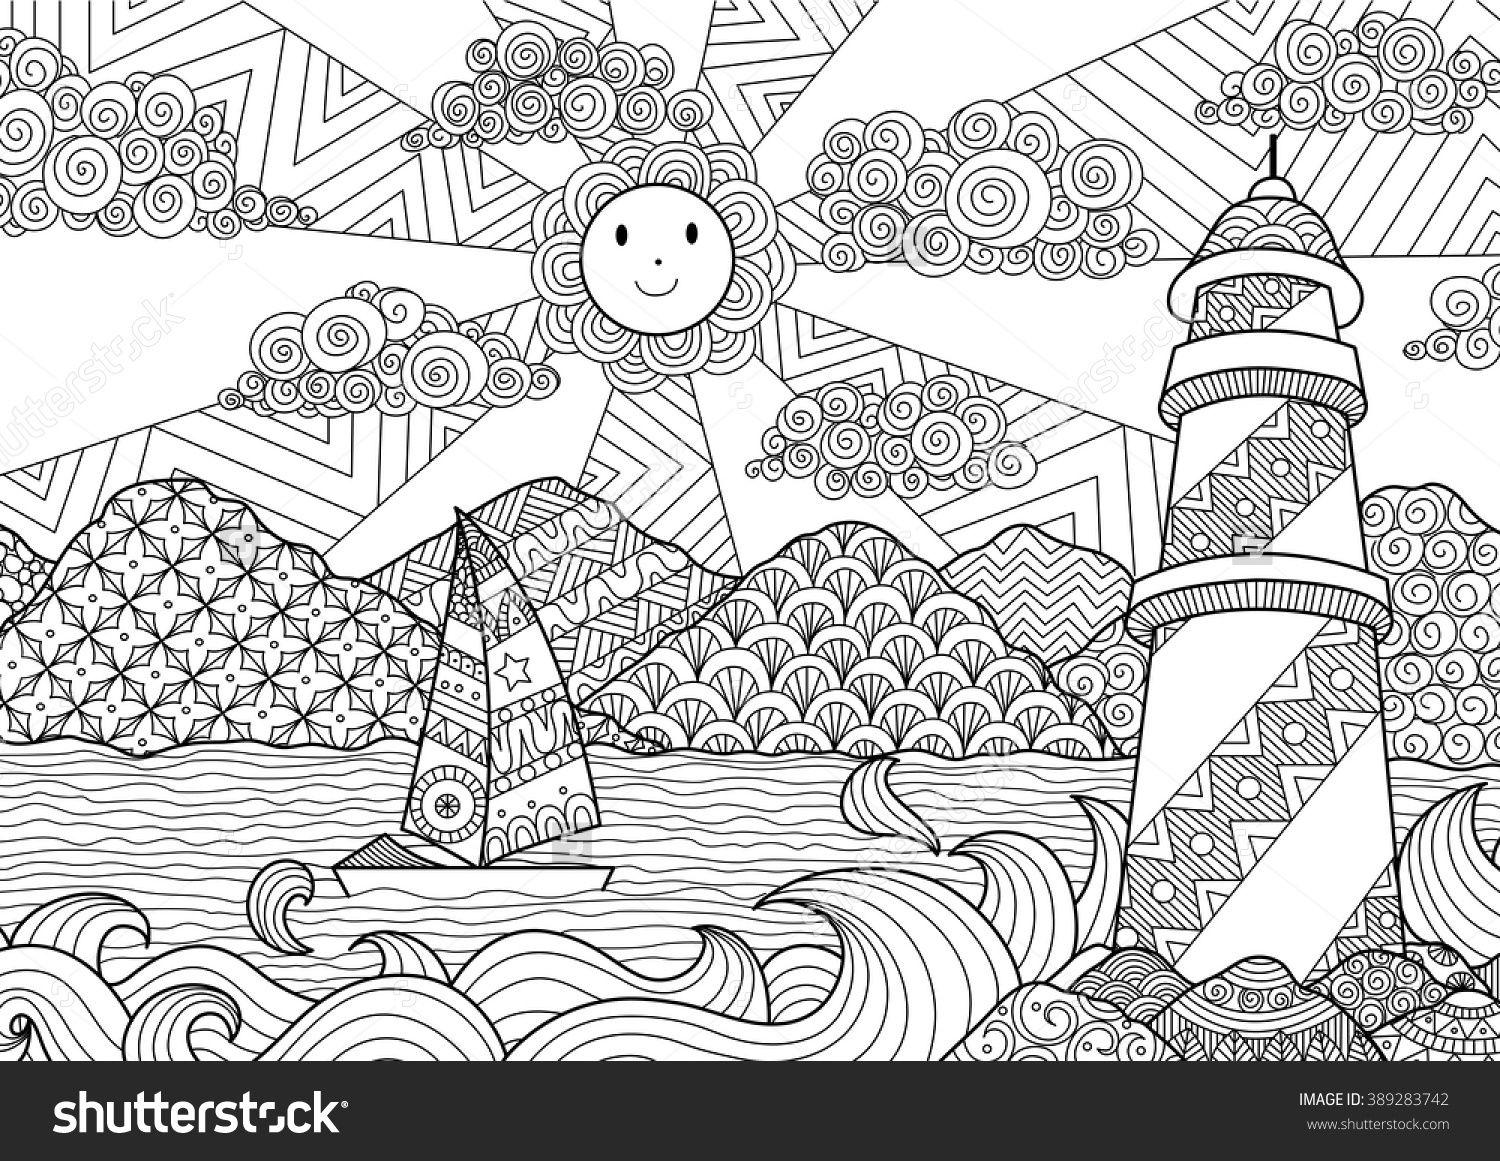 seascape line art design for coloring book for adult anti stress coloring stock vector - Line Art Coloring Pages